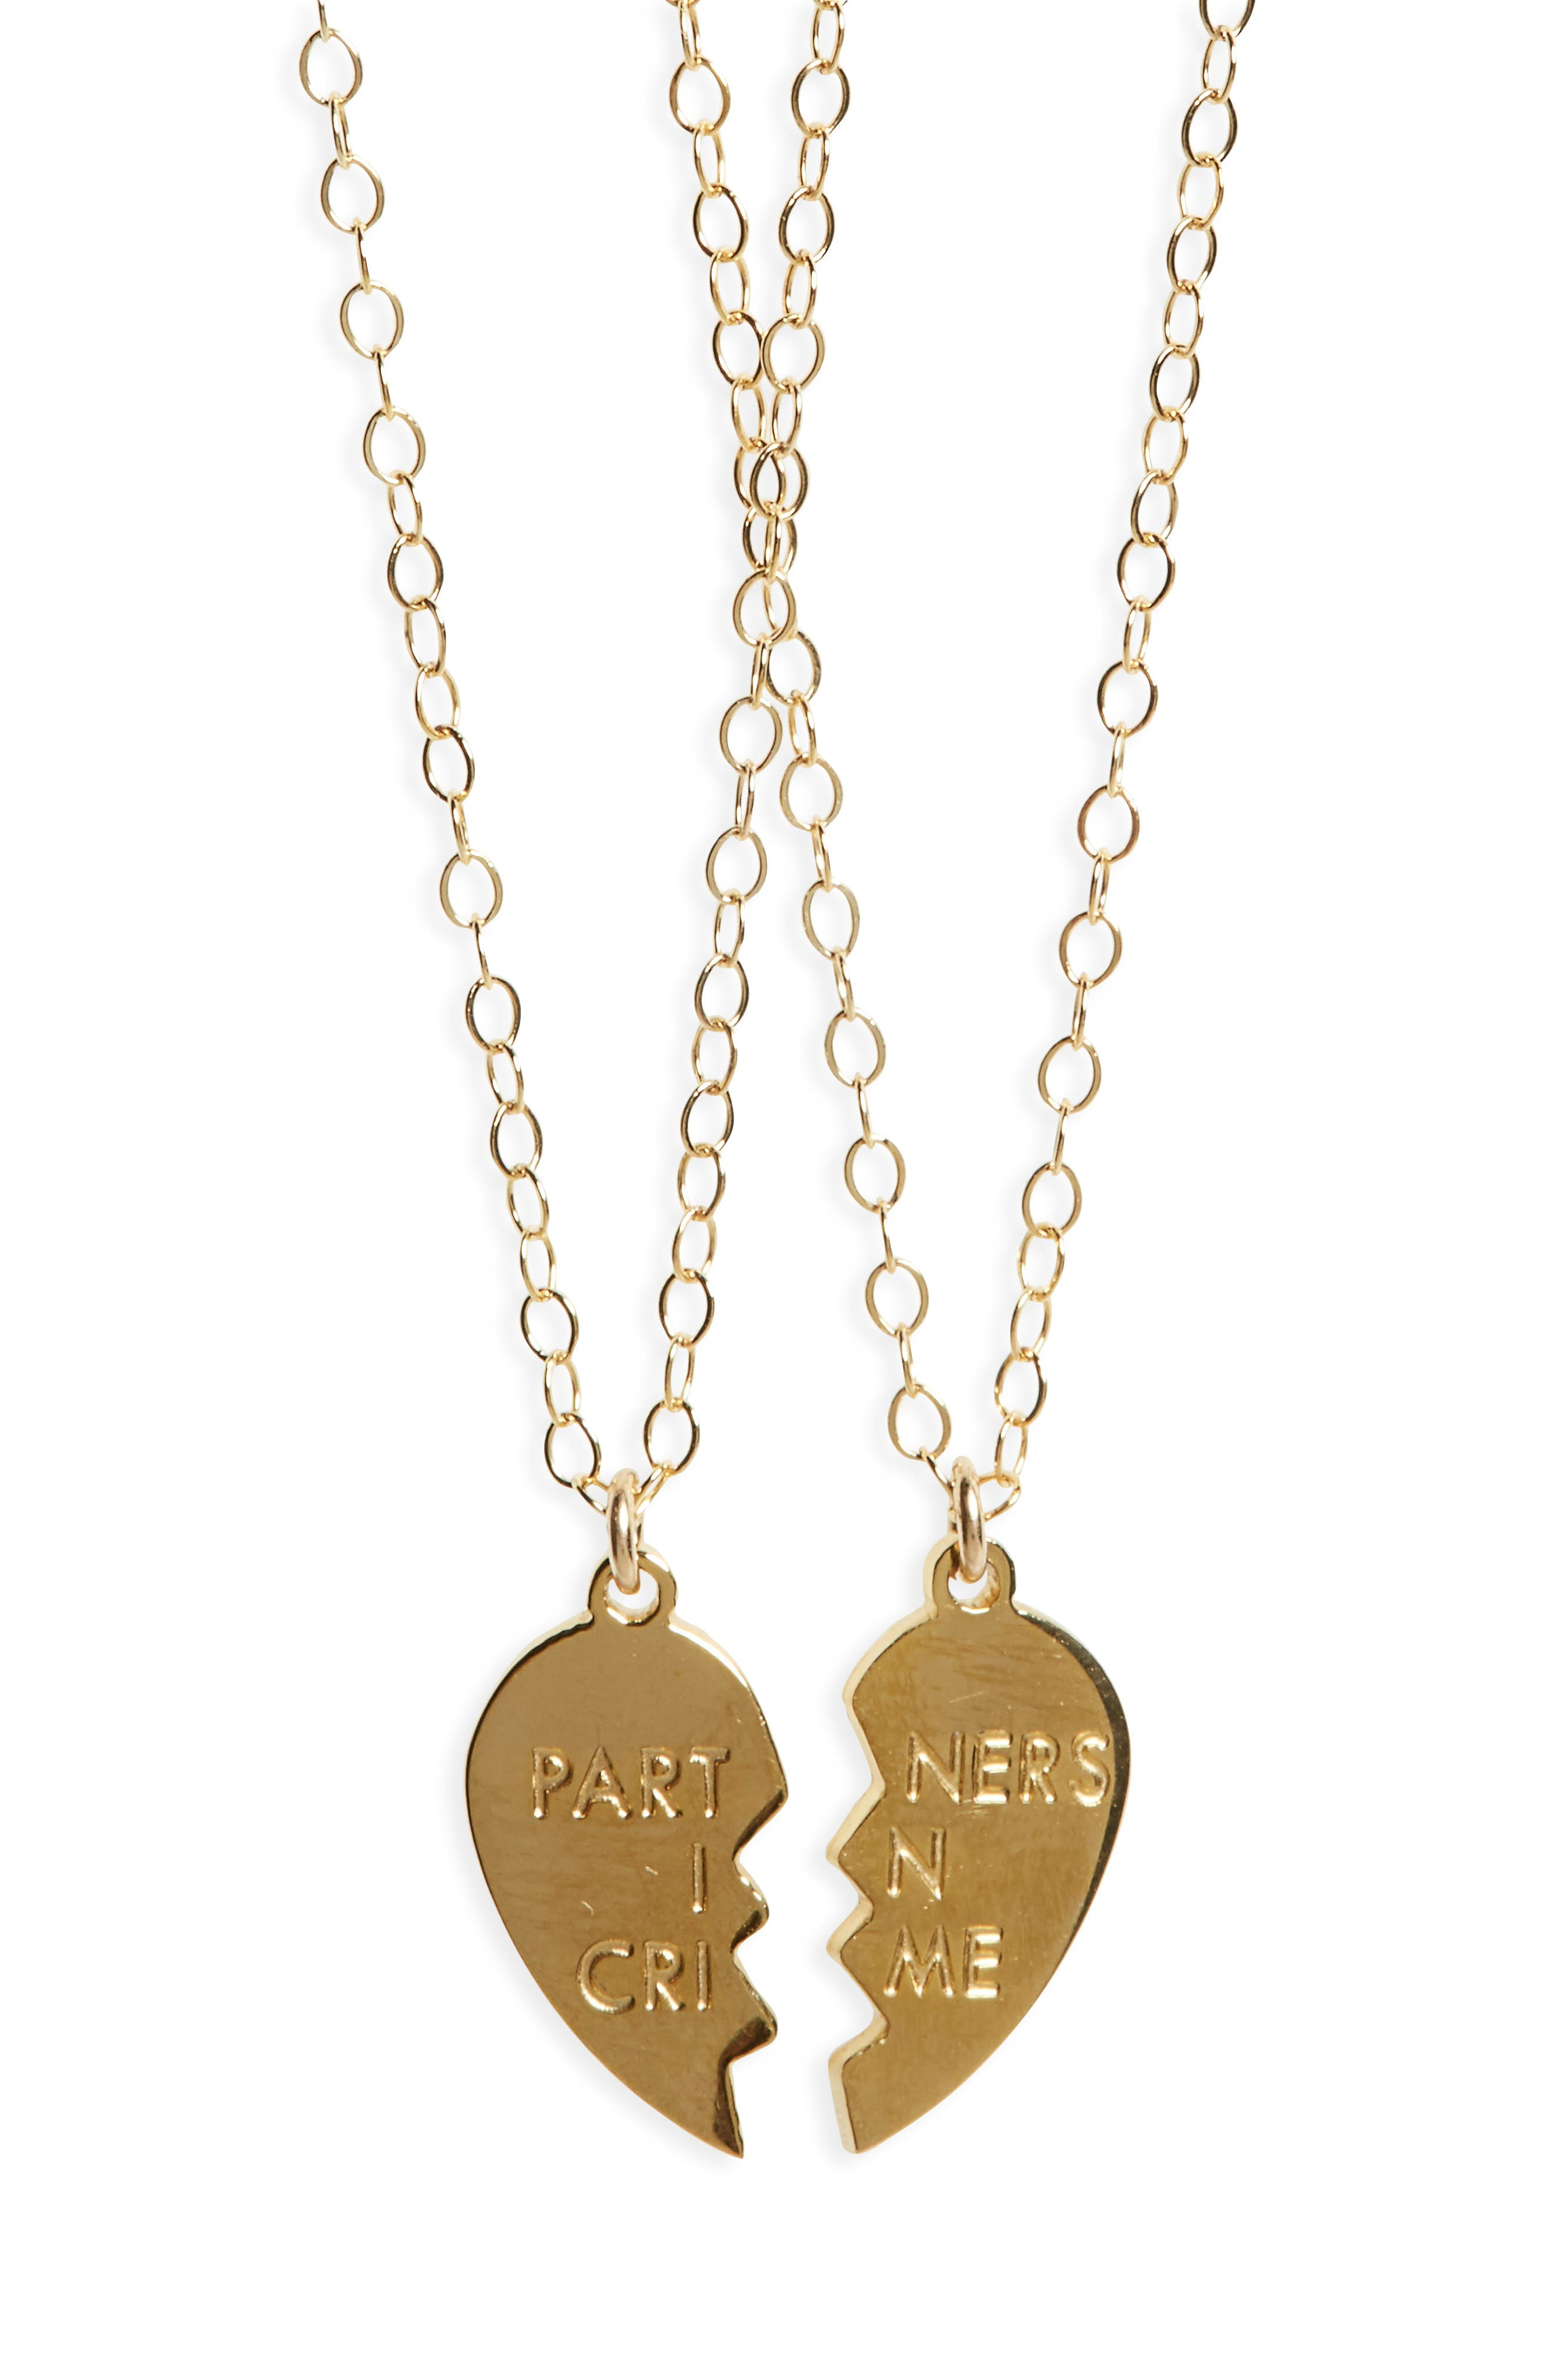 Seoul Little Partners In Crime Necklace Set